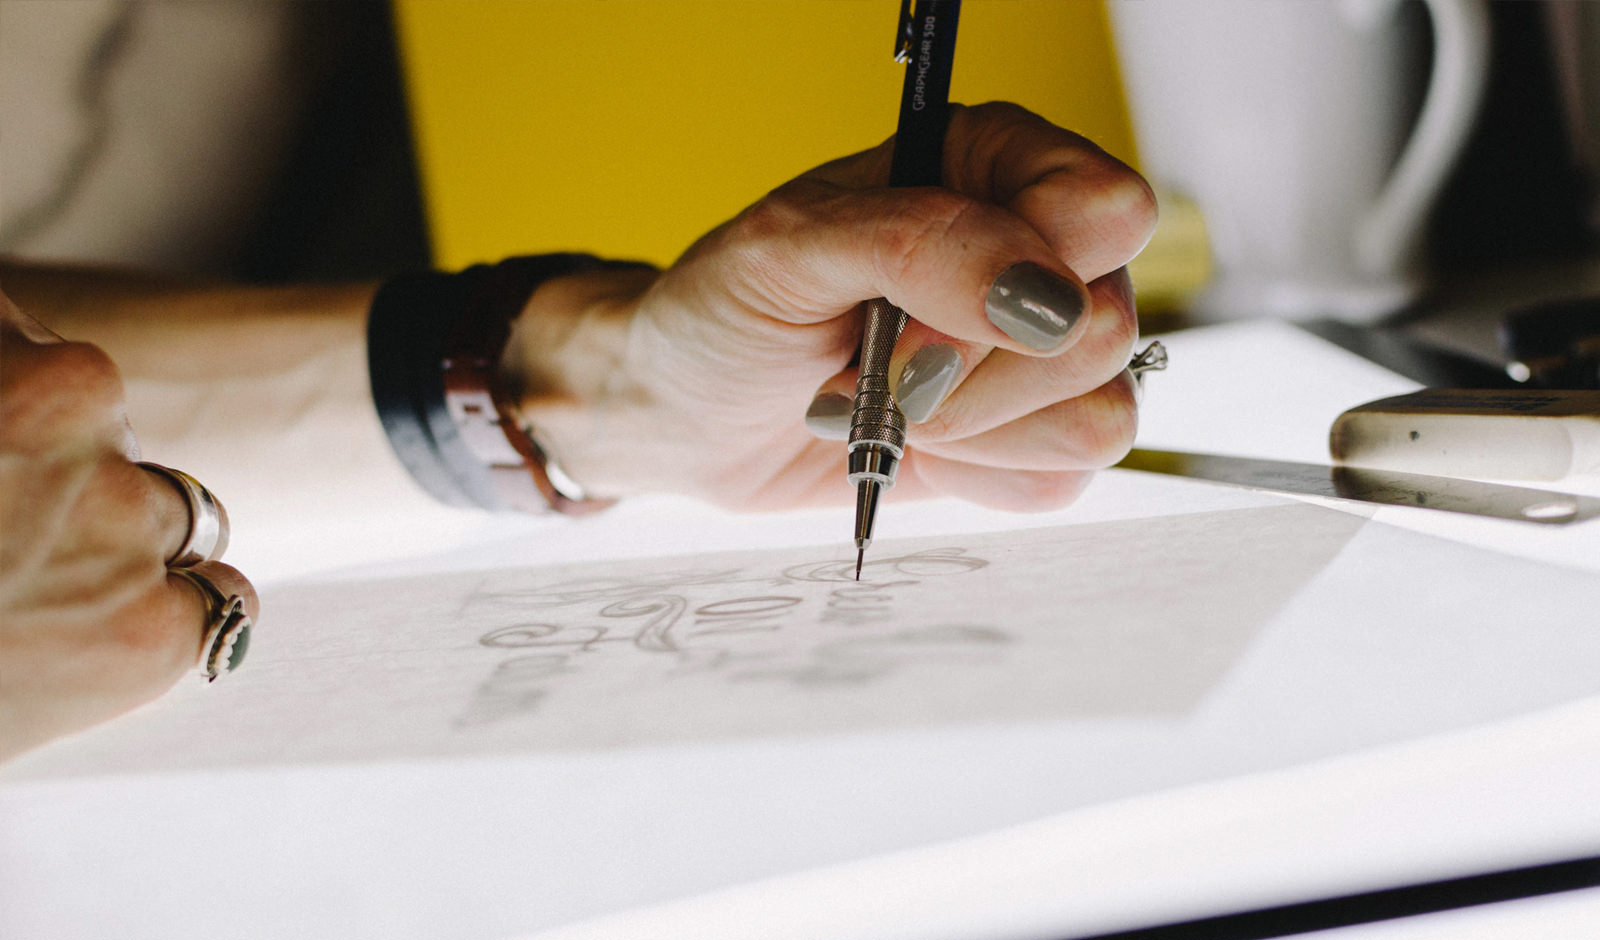 a close up image of a hand drawing on a lightbox